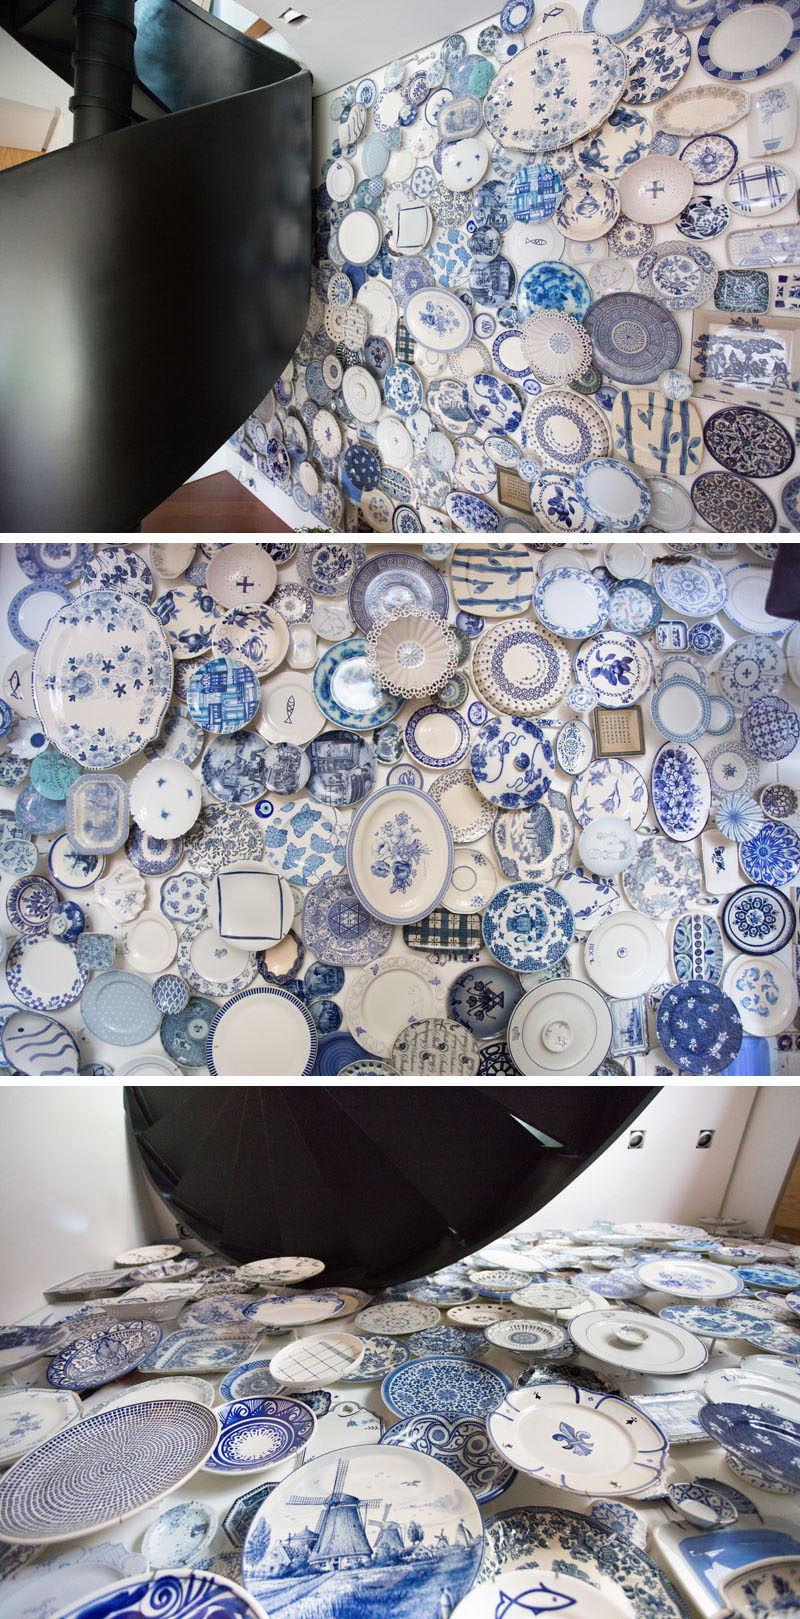 300 blue and white plates were used to create a three-dimensional accent wall.